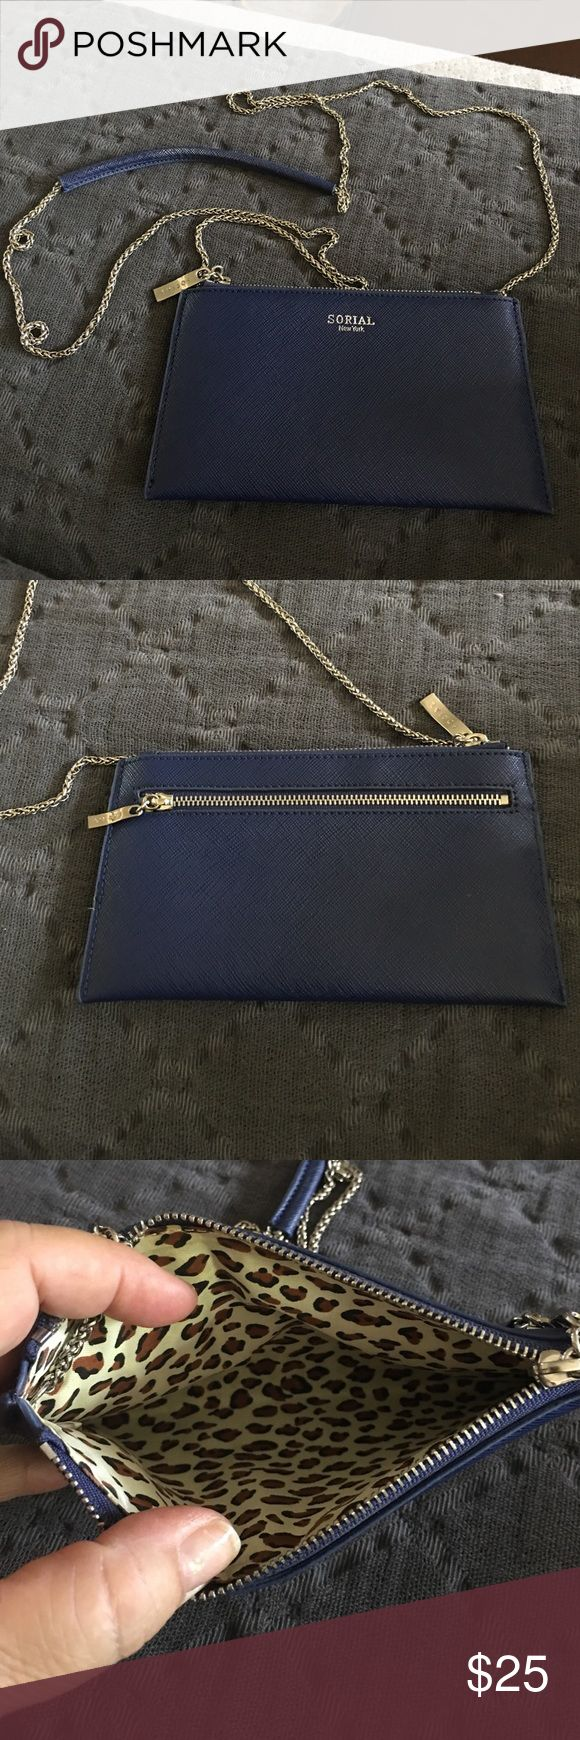 Sorial Navy Clutch with credit card holder Sorial Navy Blue Clutch that can be worn as a cross body with red Sorial credit card and license holder. Never used sorial Bags Clutches & Wristlets